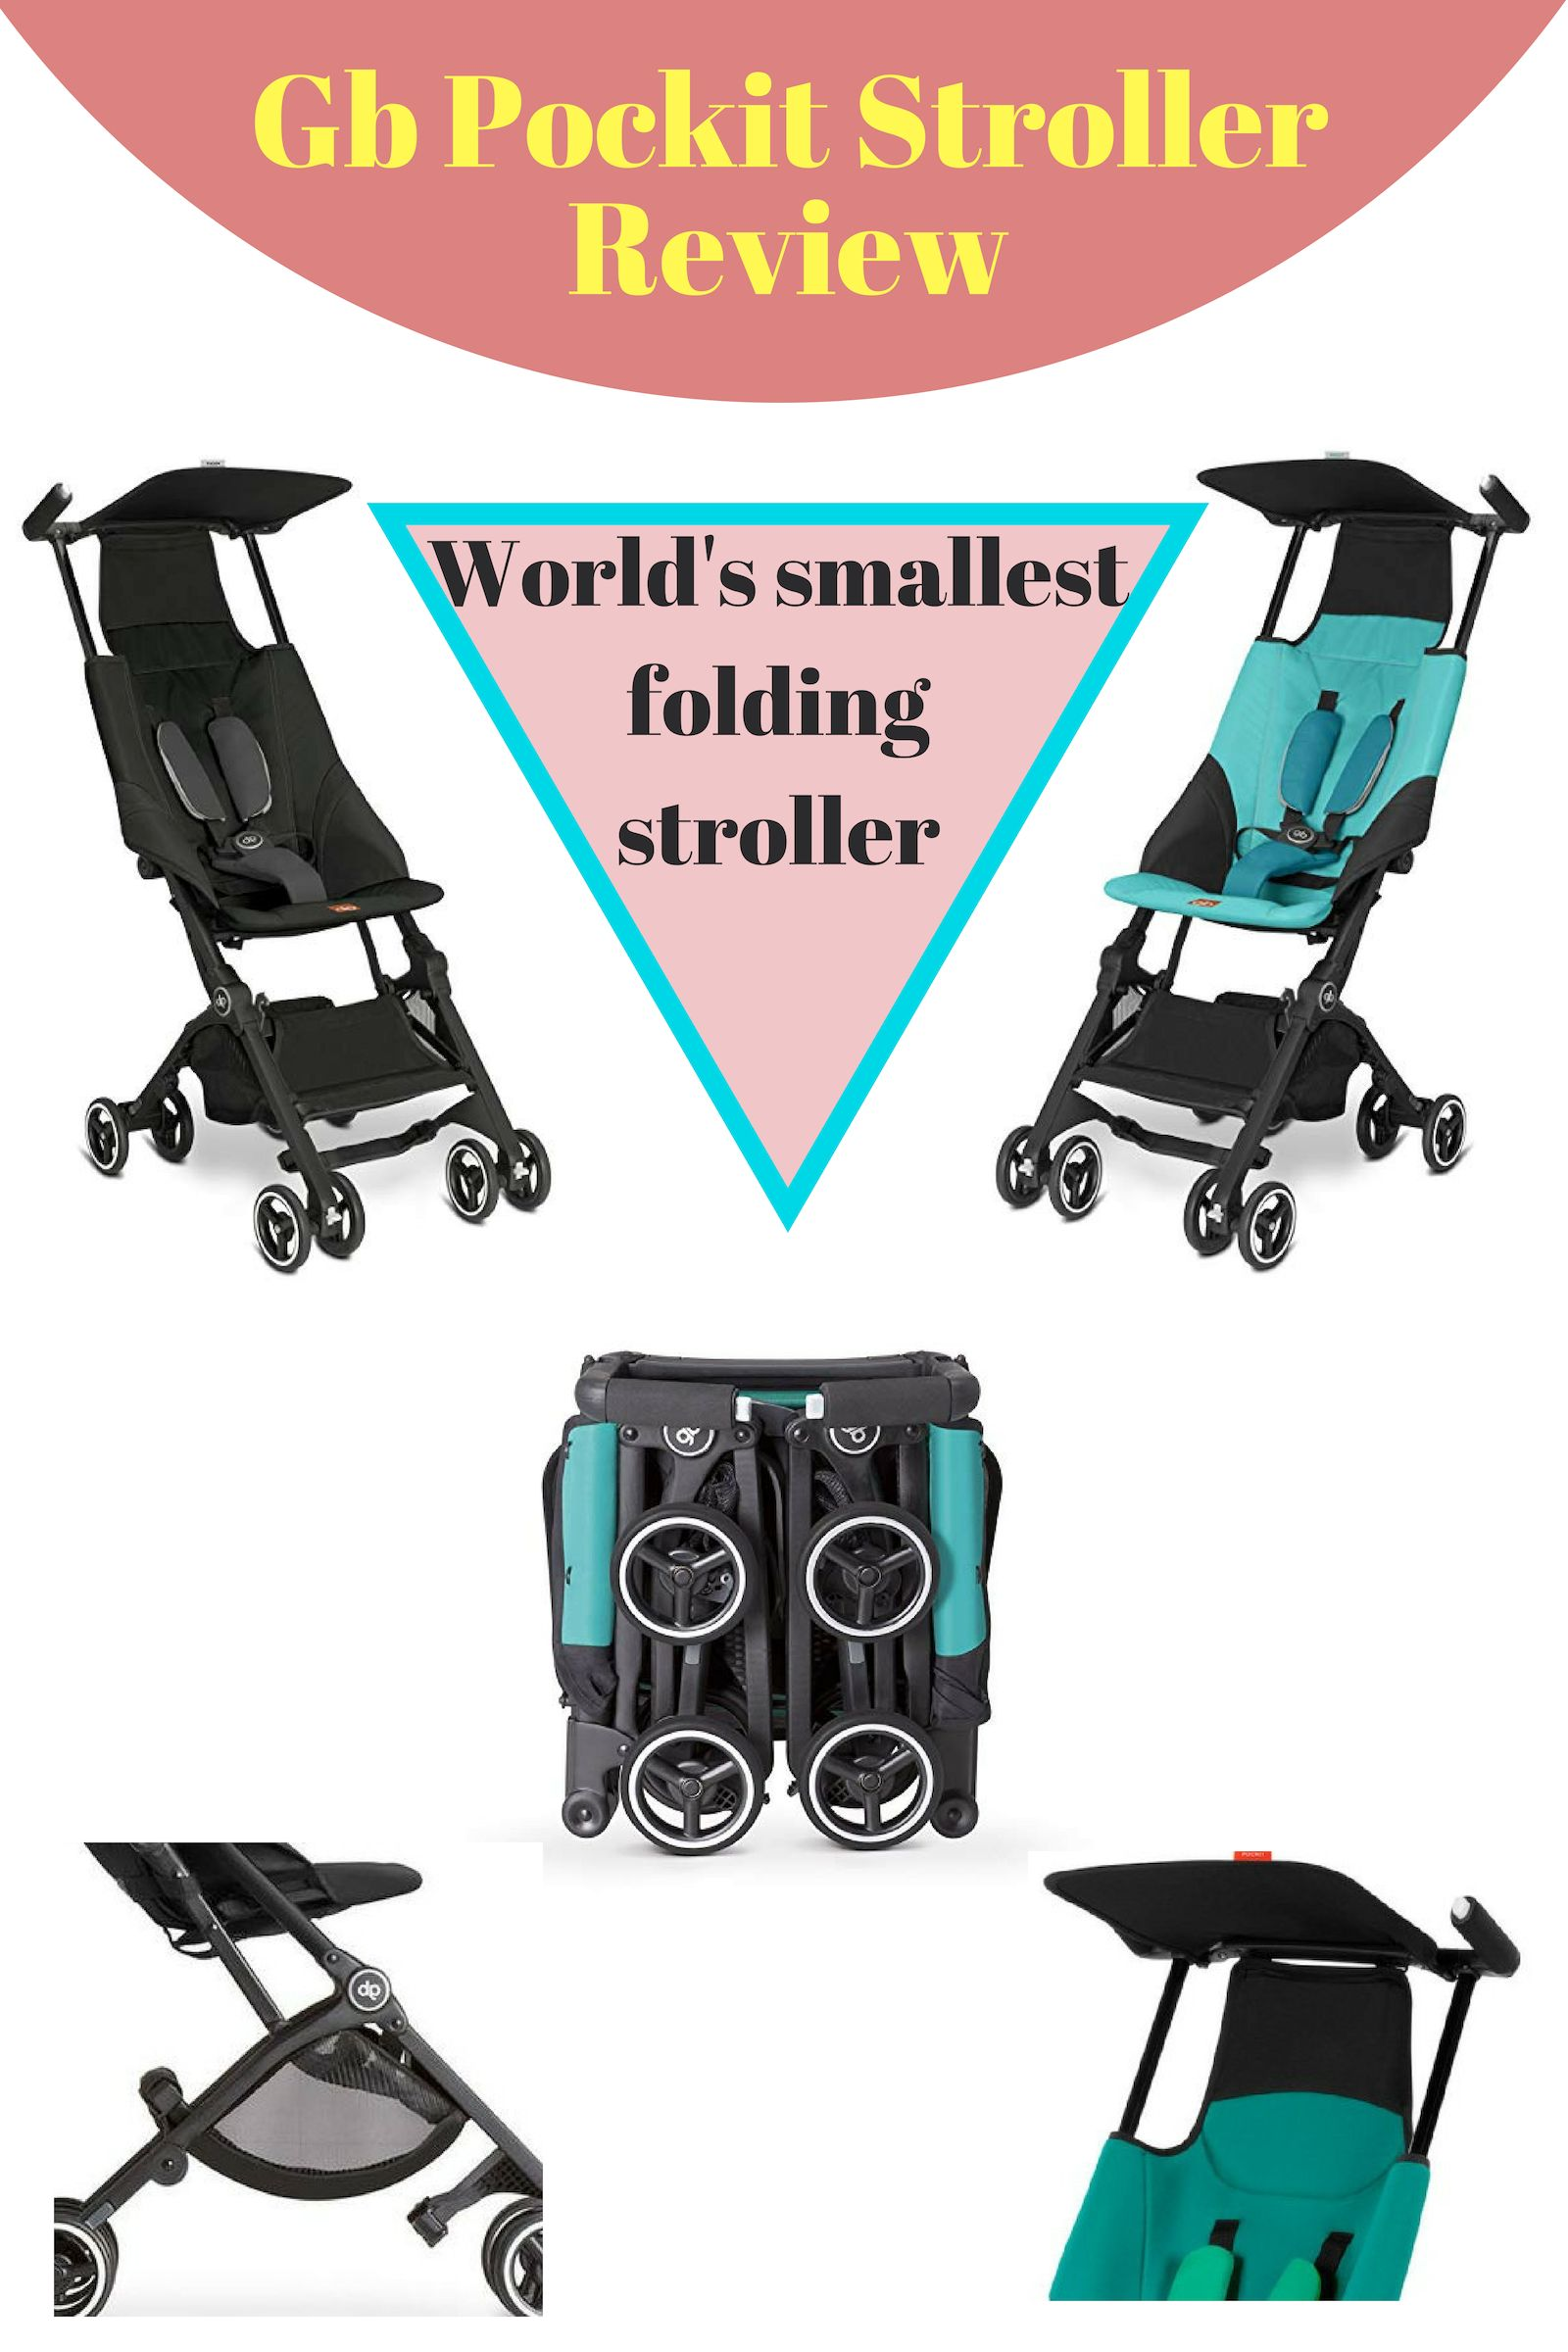 Lightweight Folding Pram Gb Pockit Stroller Review Best Lightweight Stroller